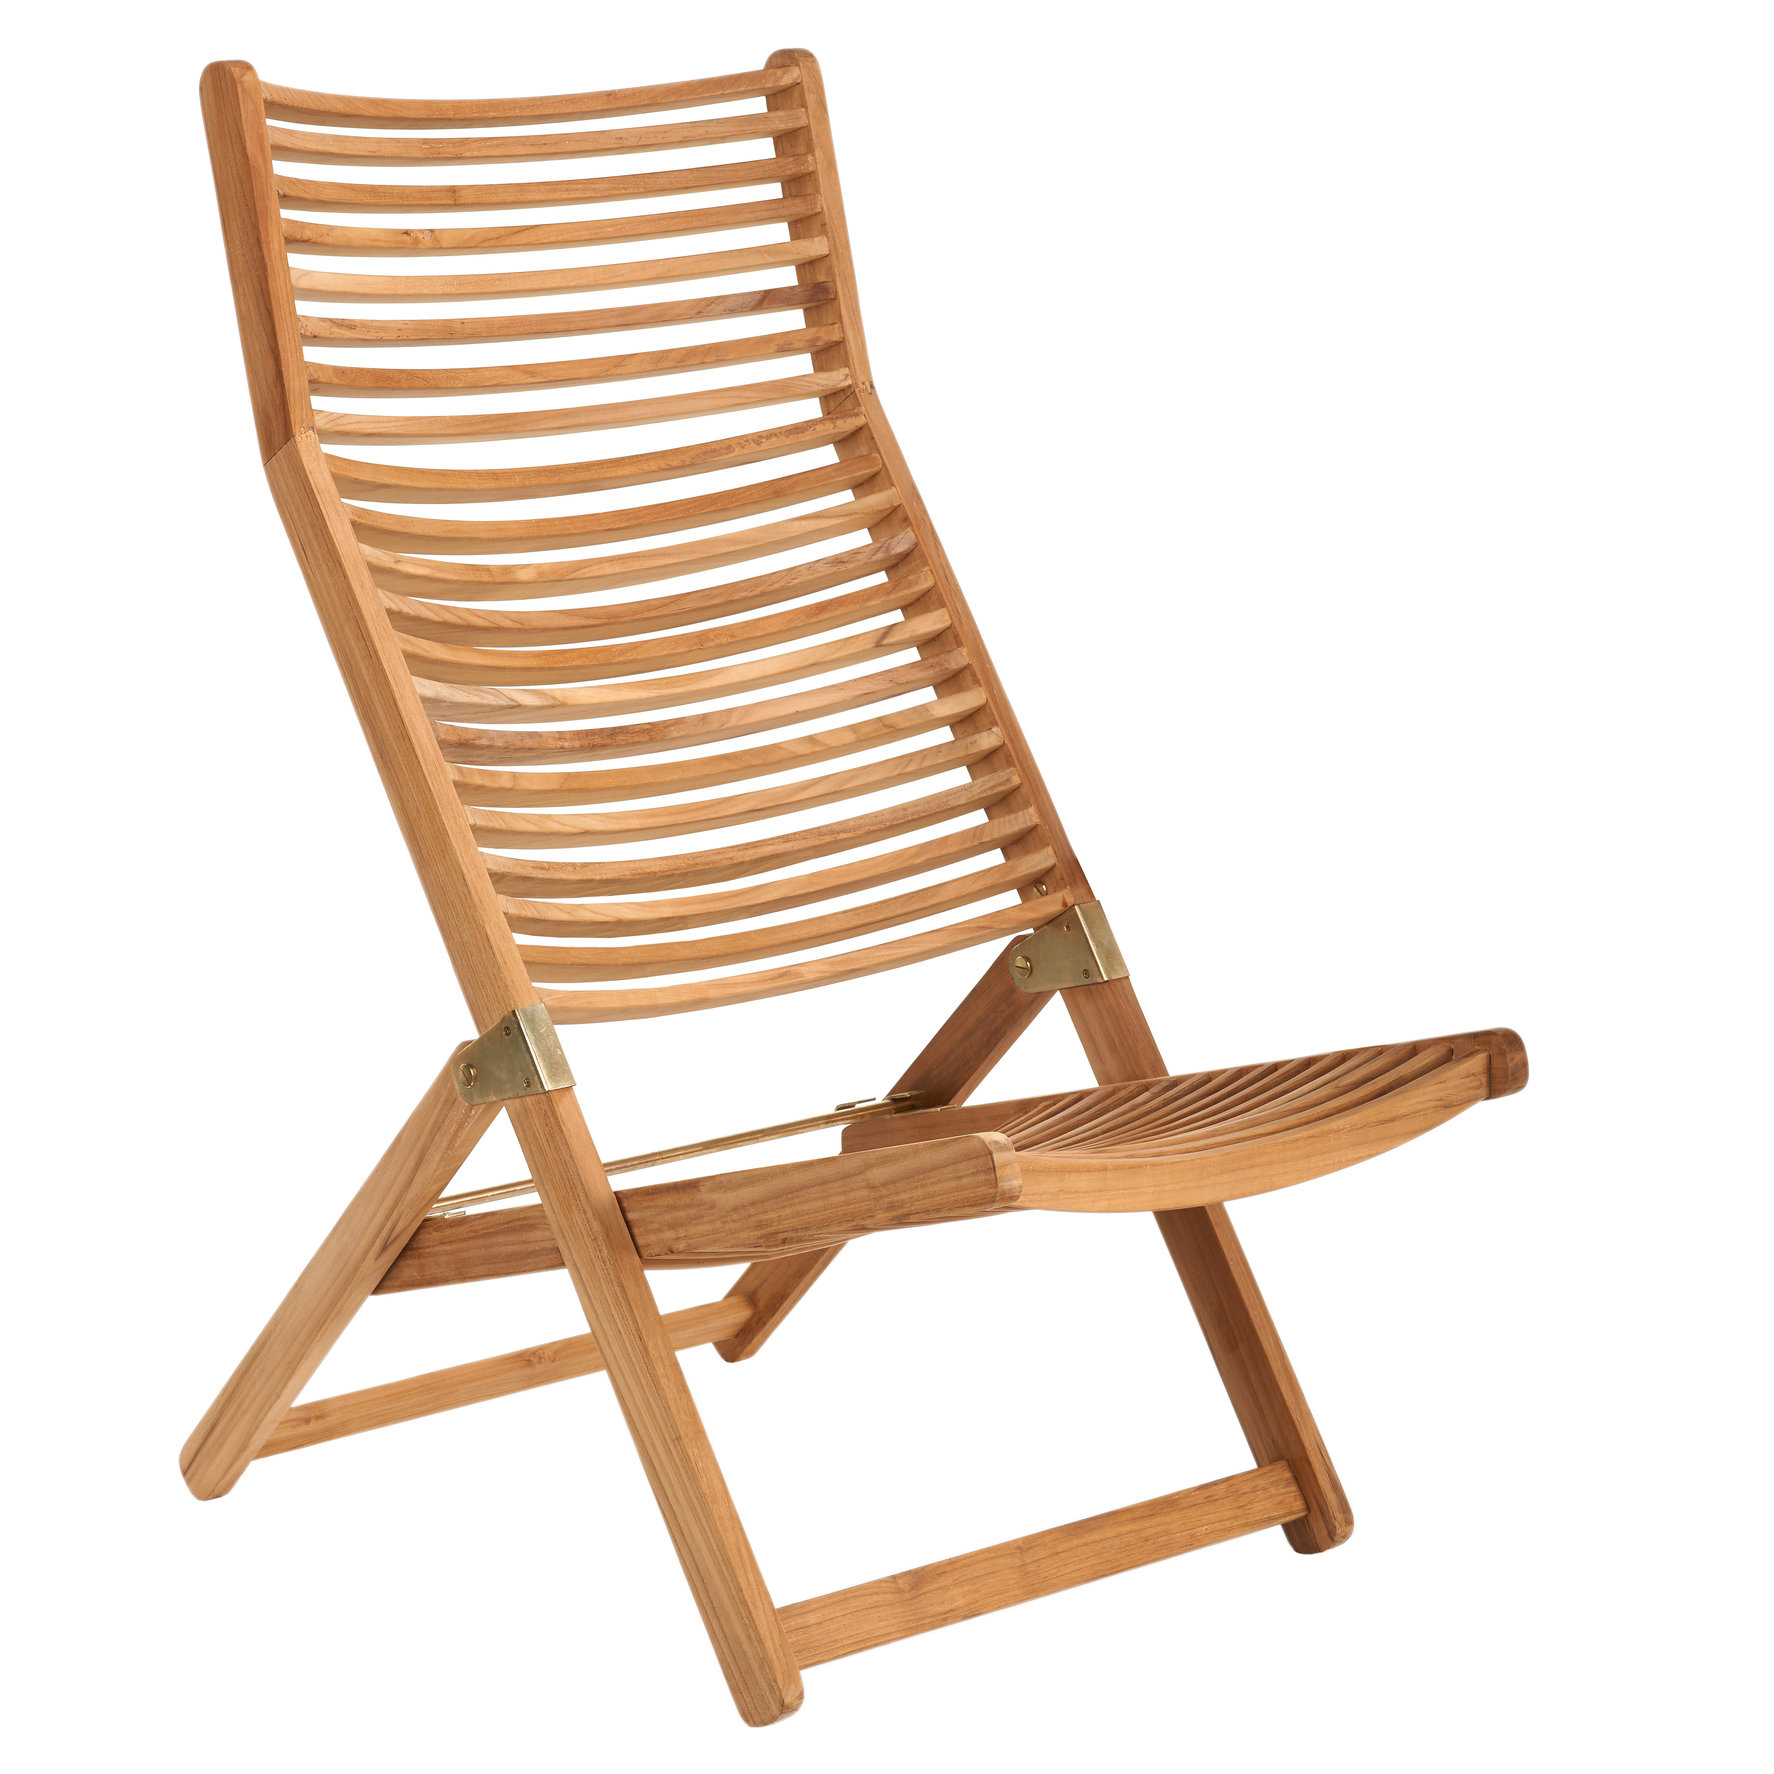 Teak folding chair Rotterdam